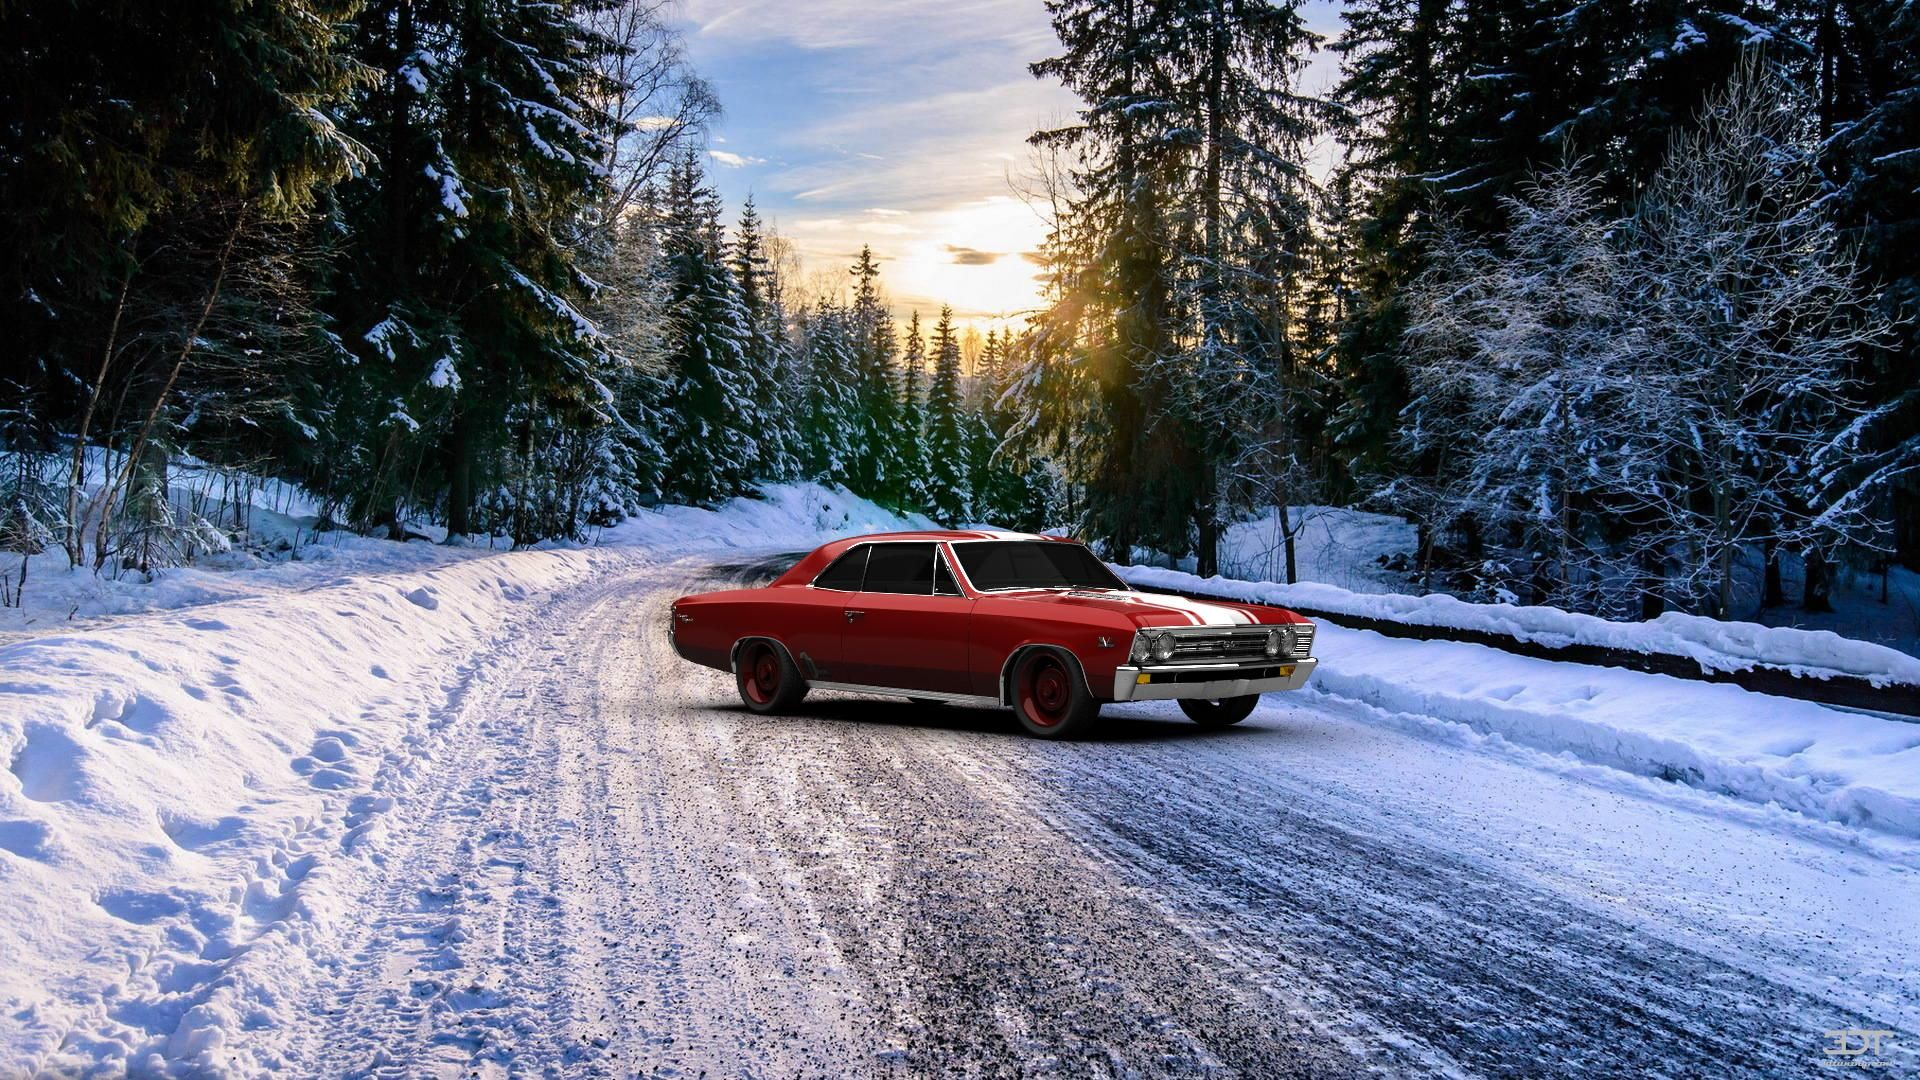 Checkout my tuning Chevrolet ChevelleSS 396 1967 at 3DTuning